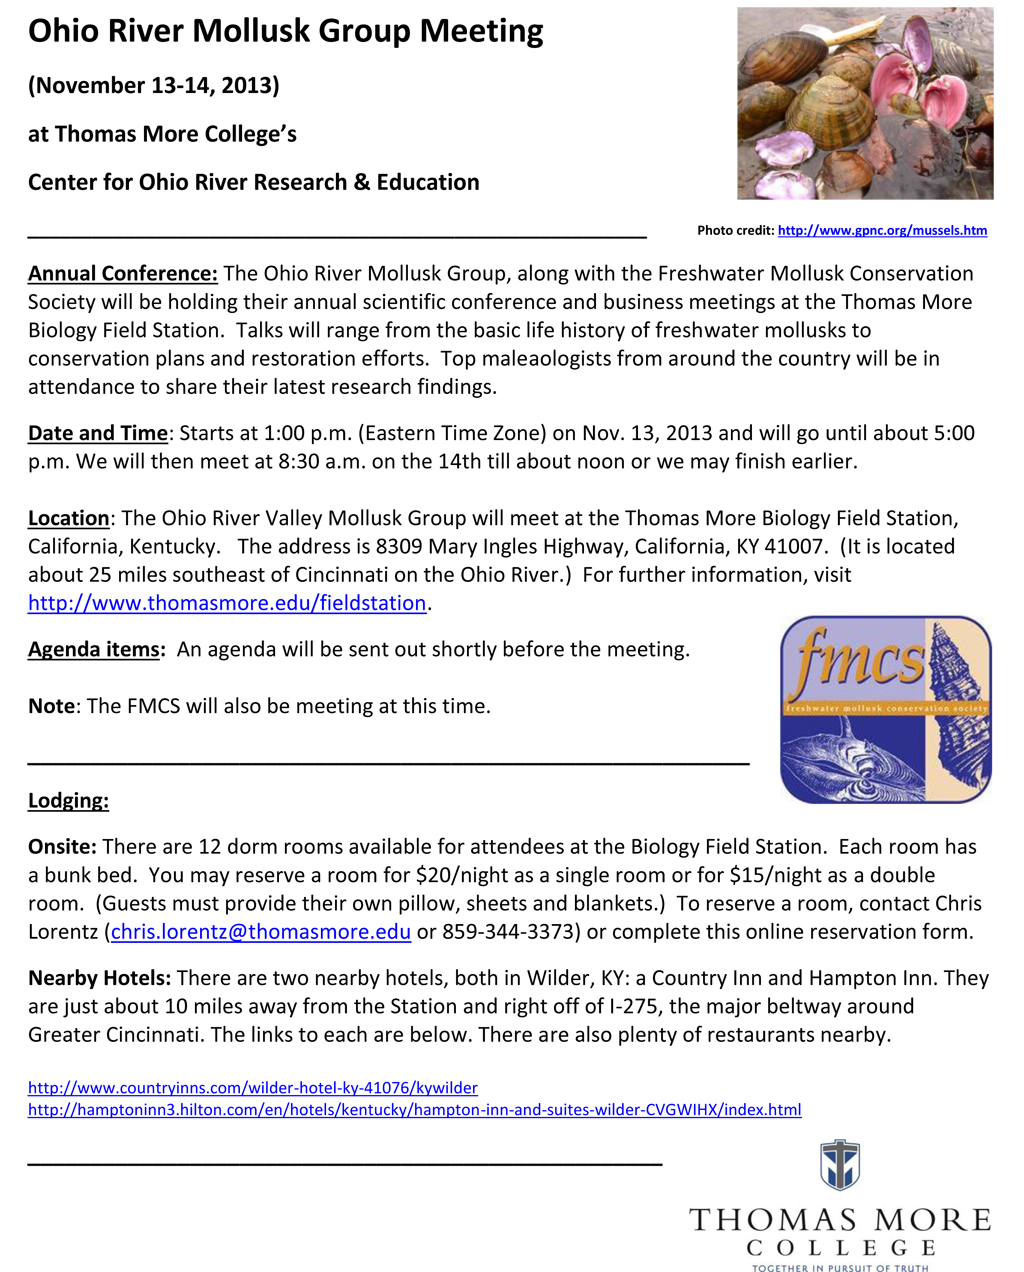 Thomas More College Biology Field Station Annual Conference Scheduled for Nov. 13 & 14